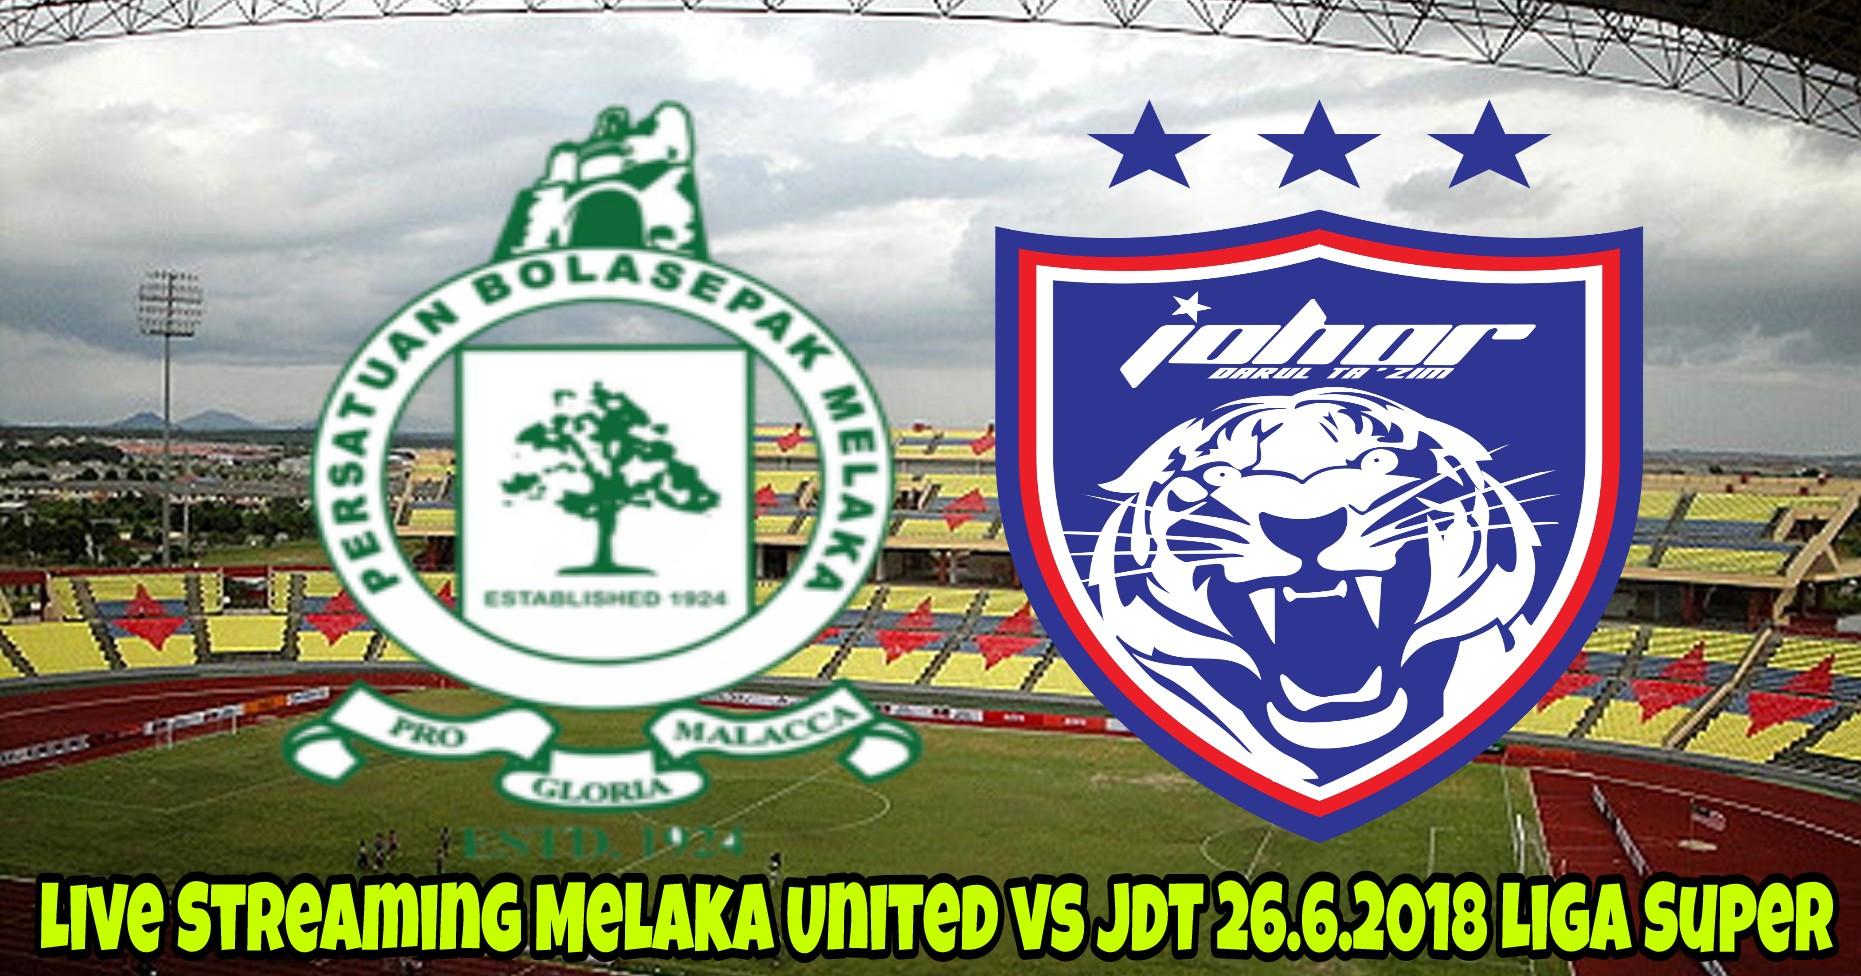 Live Streaming Melaka United vs JDT 26.6.2018 Liga Super